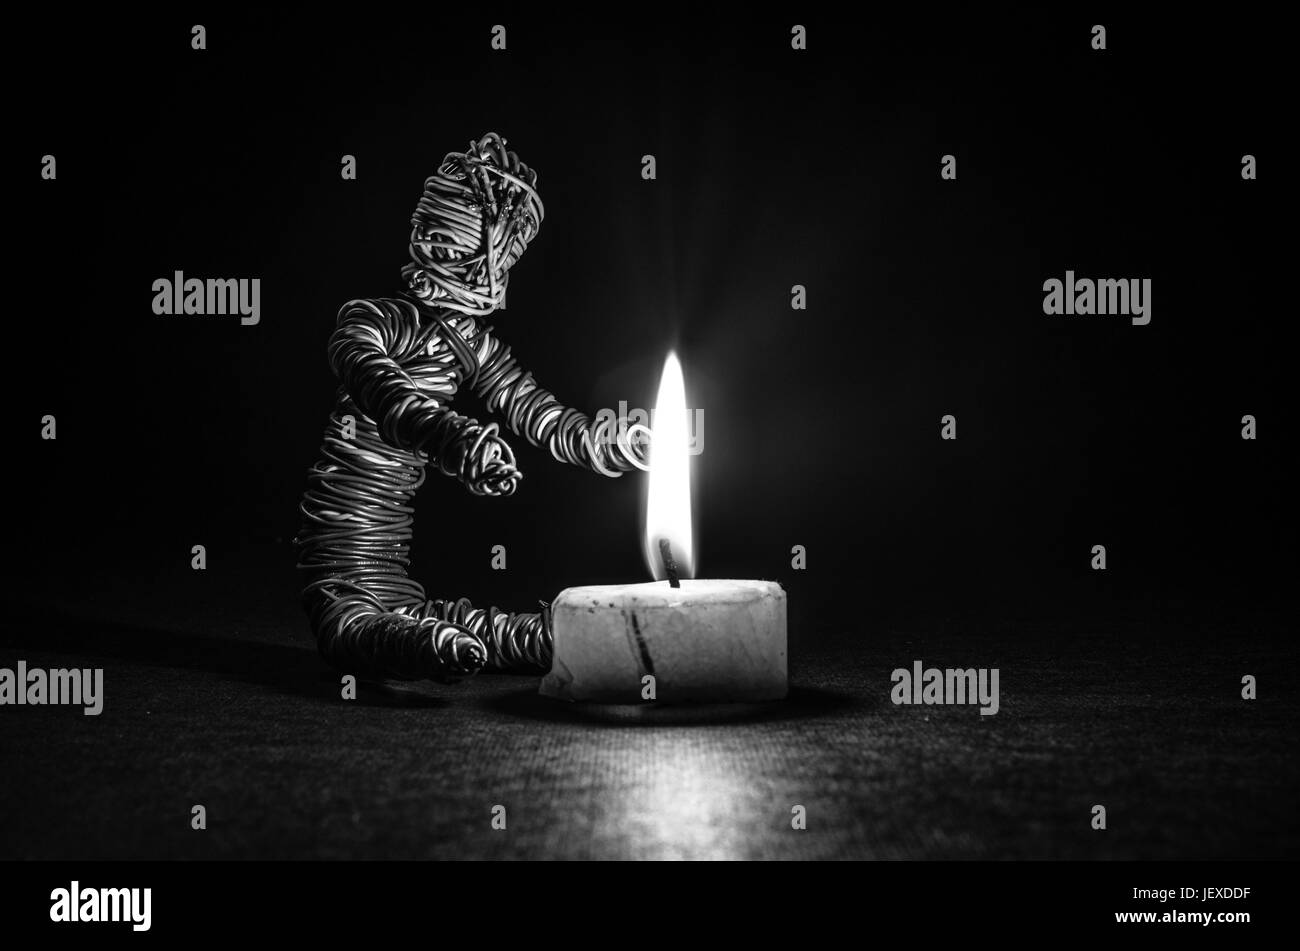 a small puppet getting warm - Stock Image